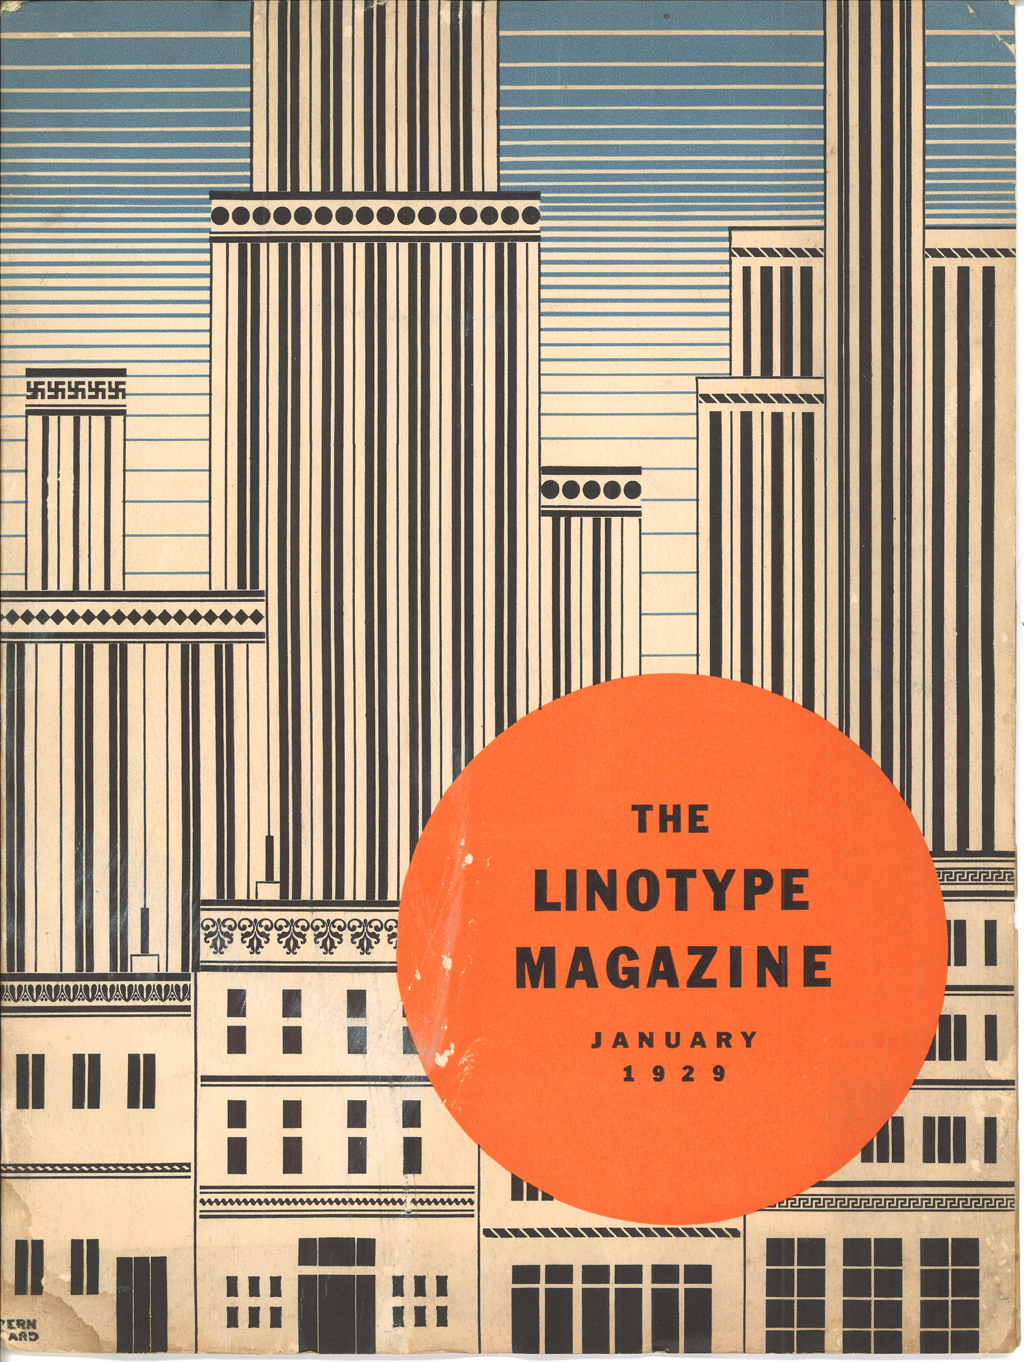 Cover of The Linotype Magazine (January 1929). Design by Lucian Bernhard.